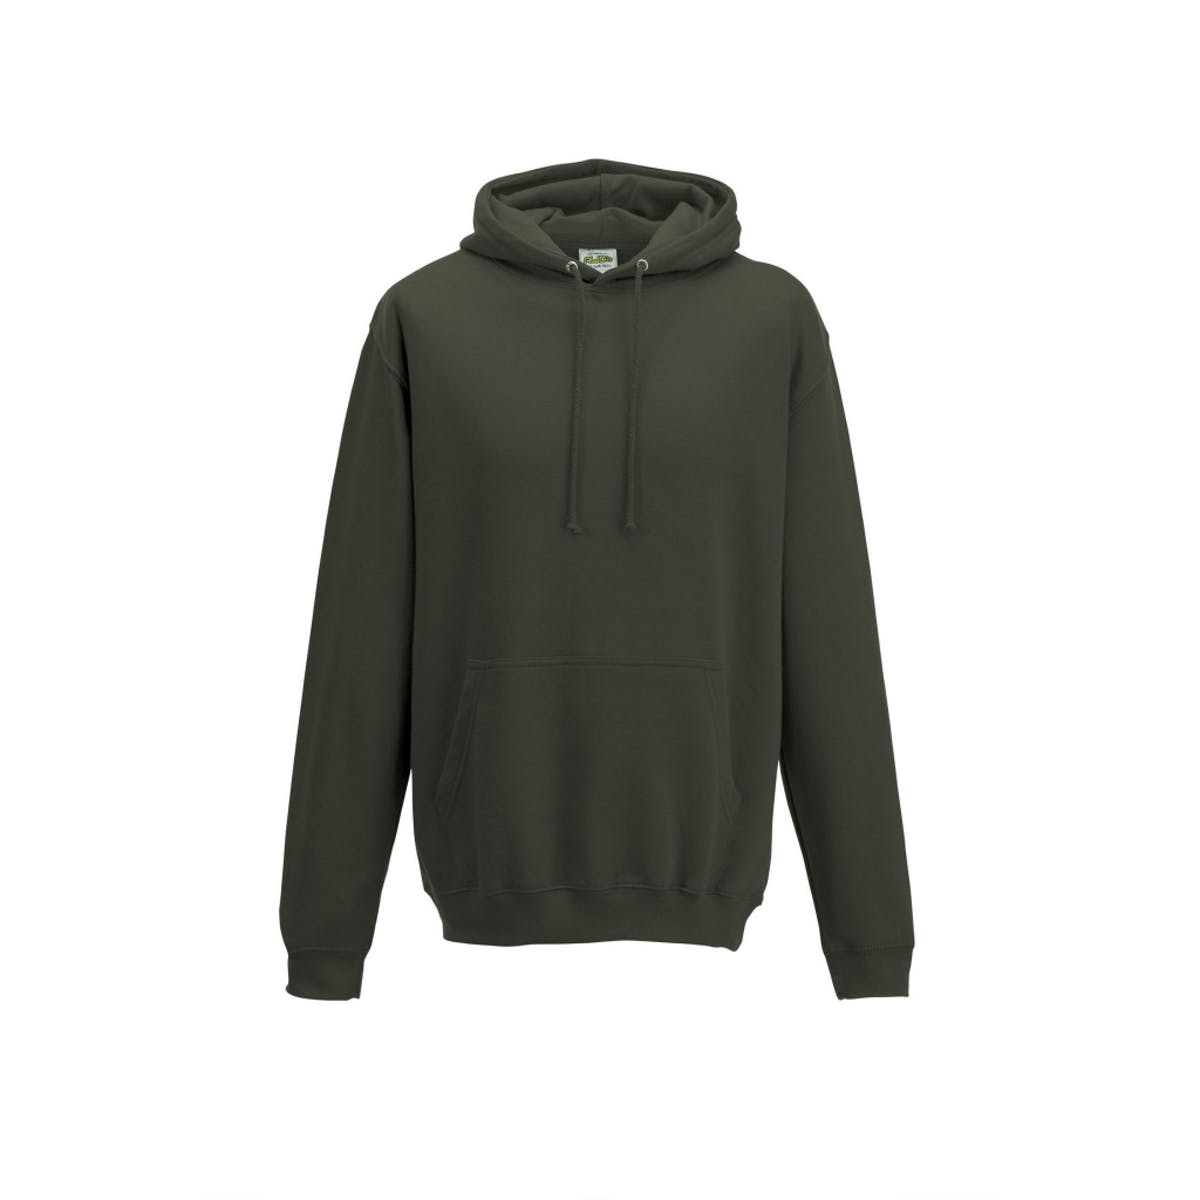 olive green college hoodies